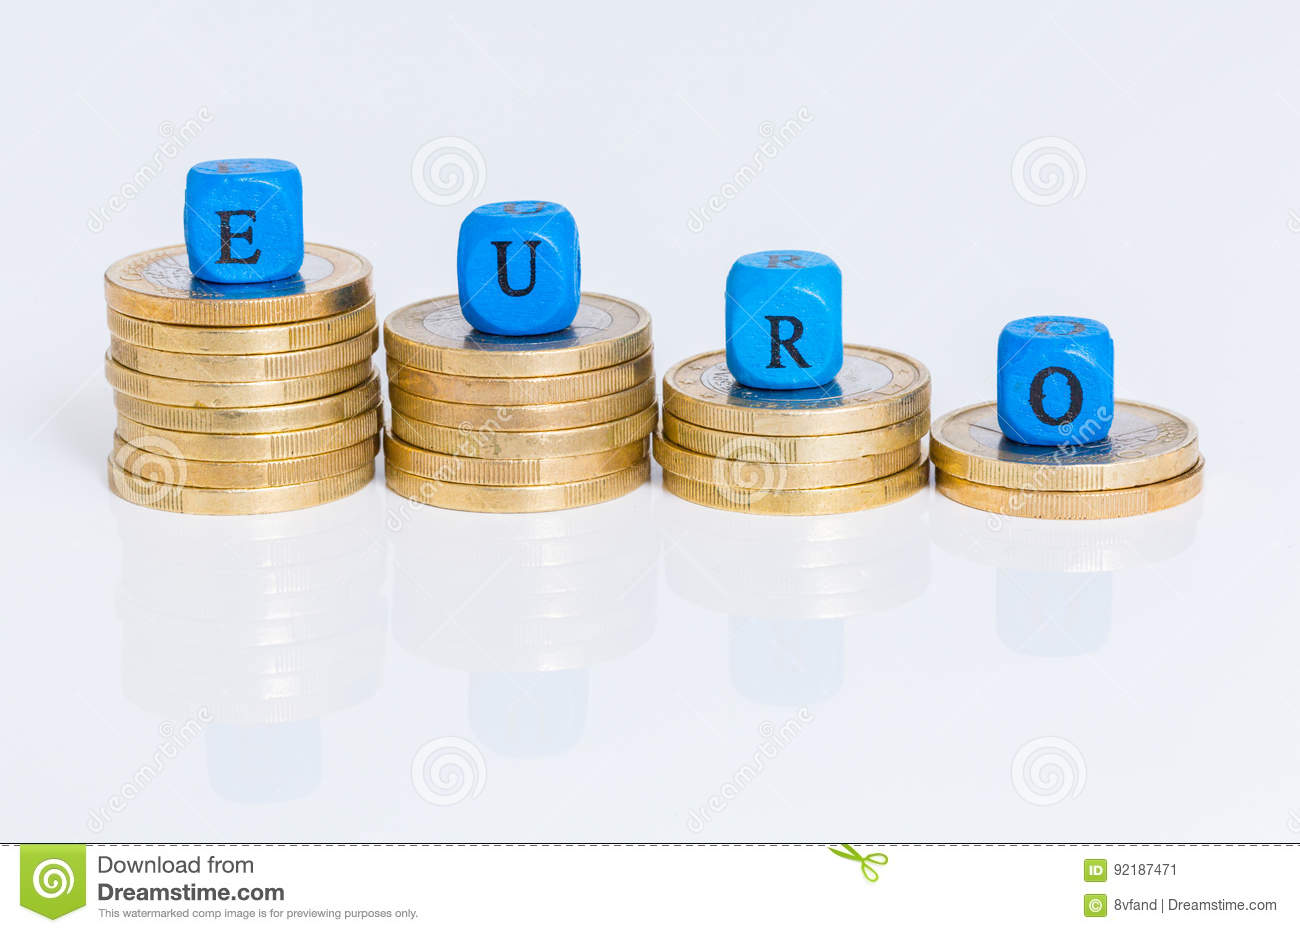 Euro letter cubes with coins against white background